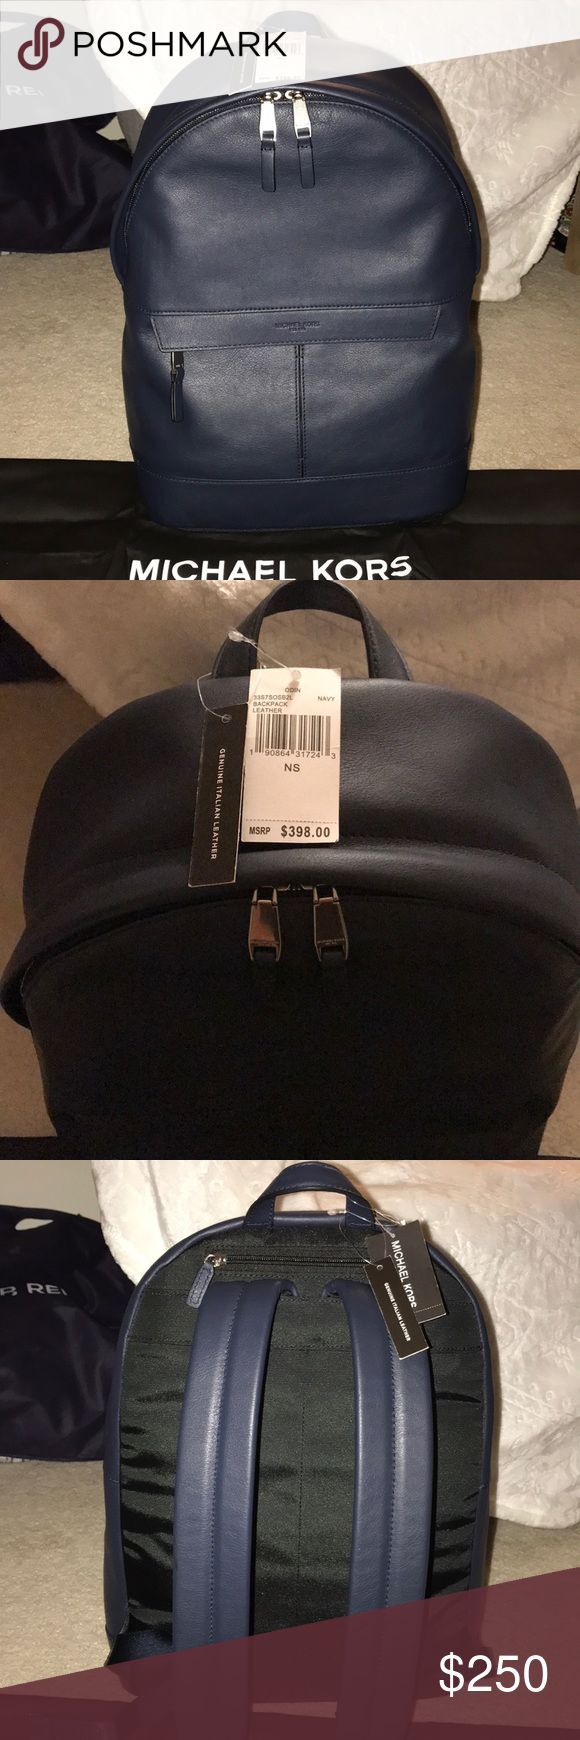 Genuine Leather Michael Kors Odin Backpack NWT Michael Kors smooth leather backpack Zipper closure Top carry handle, adjustable shoulder straps, front zipped pocket, top zipped pocket, interior zipped pocket, brand embossed Use specialist cleaner Height 40cm, width 30cm, depth 14cm Color: Navy Blue  Designed with the clean and minimalist style we've come to expect from Michael Kors, the Odin backpack is the ideal day-to-day companion. Whether for work or play, this sleek leather piece boasts…